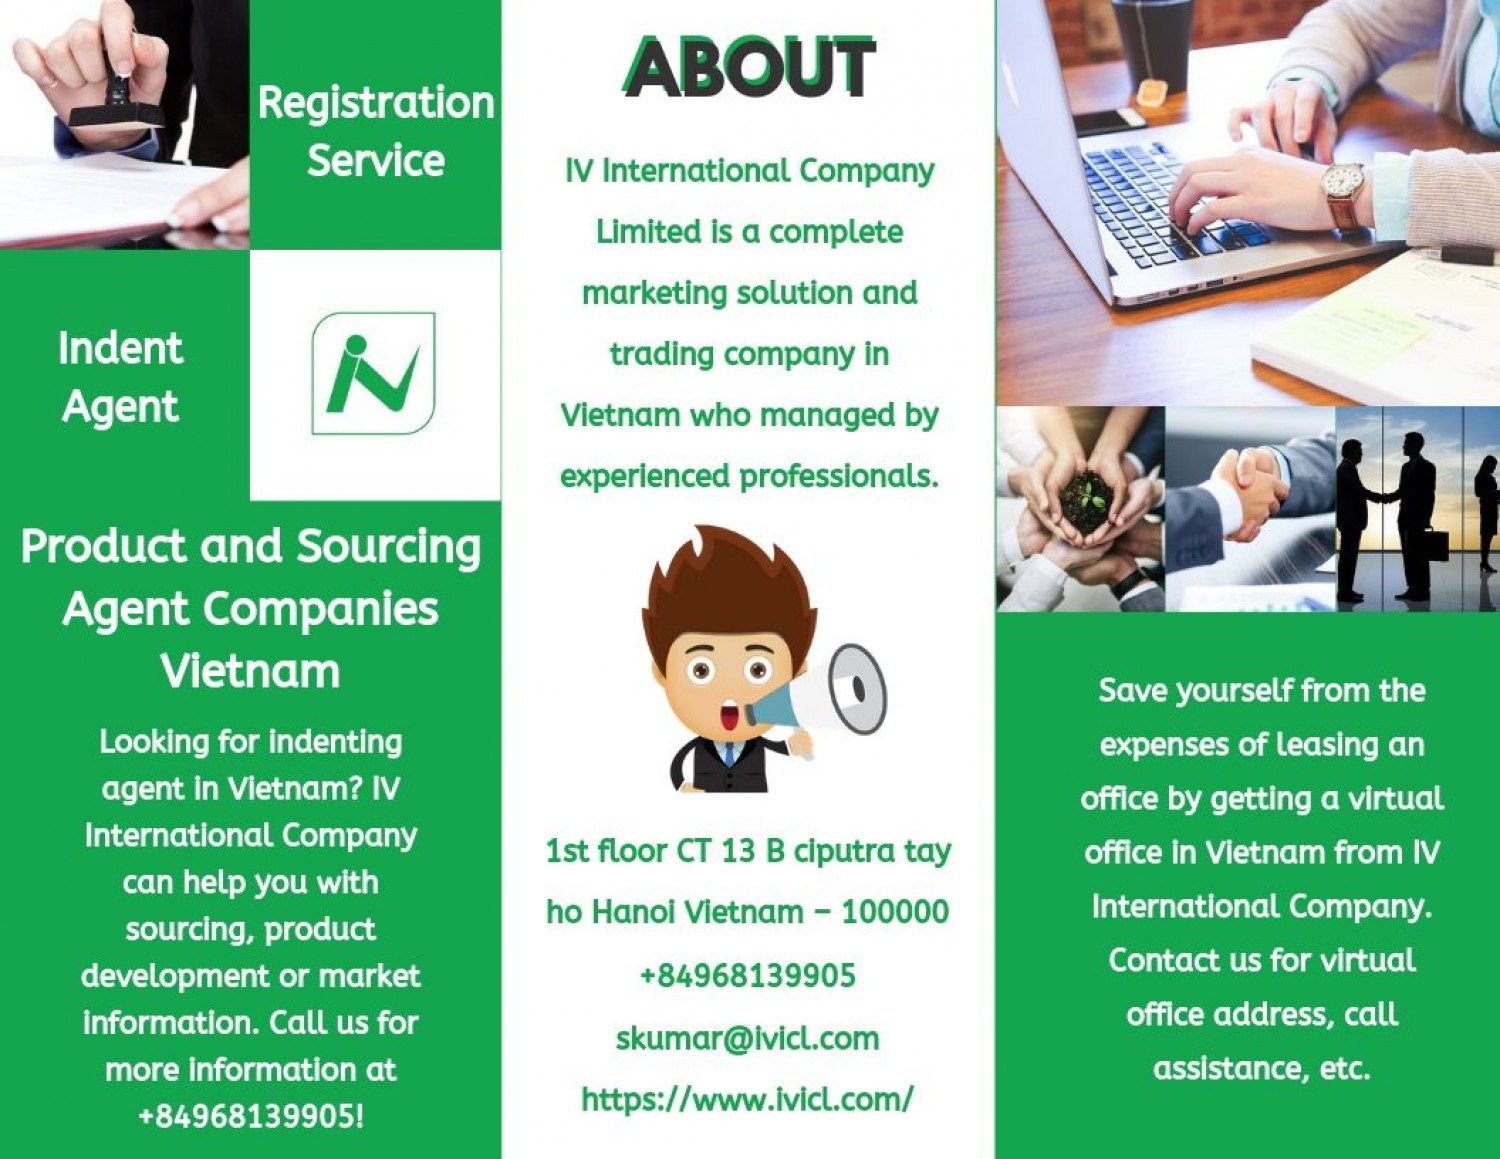 Product and Sourcing Agent Companies Vietnam - IV International Company Infographic